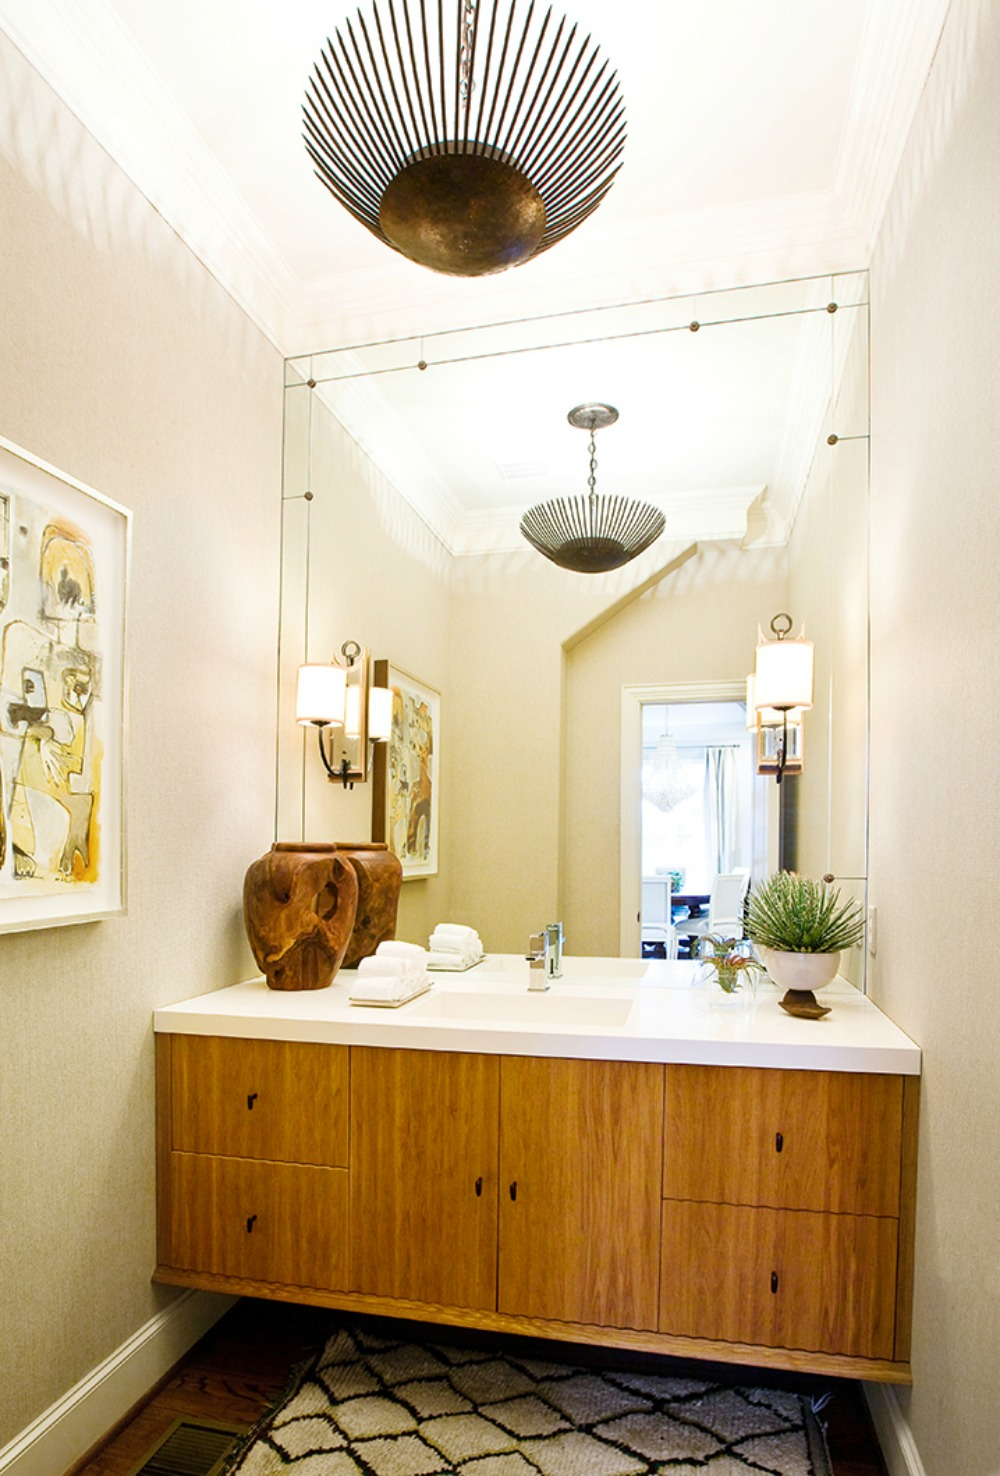 Make Your Bathroom Chic With This One Item @ acheekylifestyle.com by Val Banderman